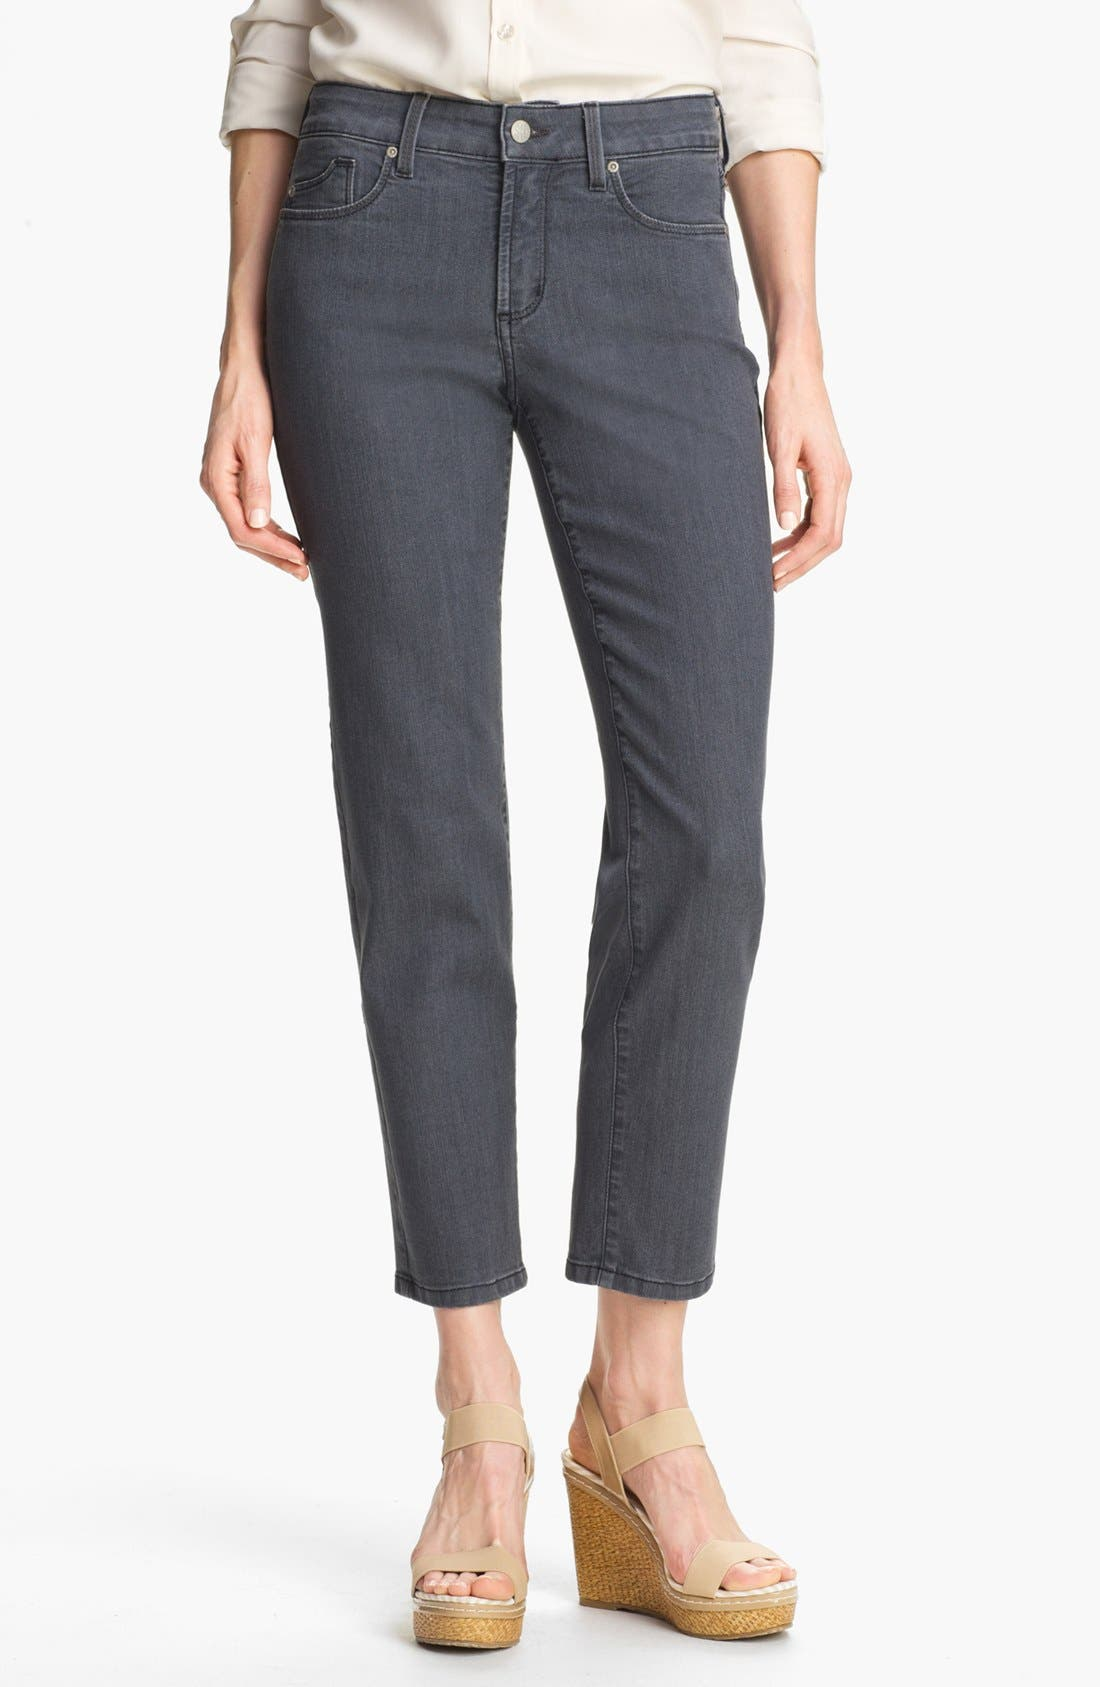 Alternate Image 1 Selected - NYDJ 'Alisha' Skinny Stretch Ankle Jeans